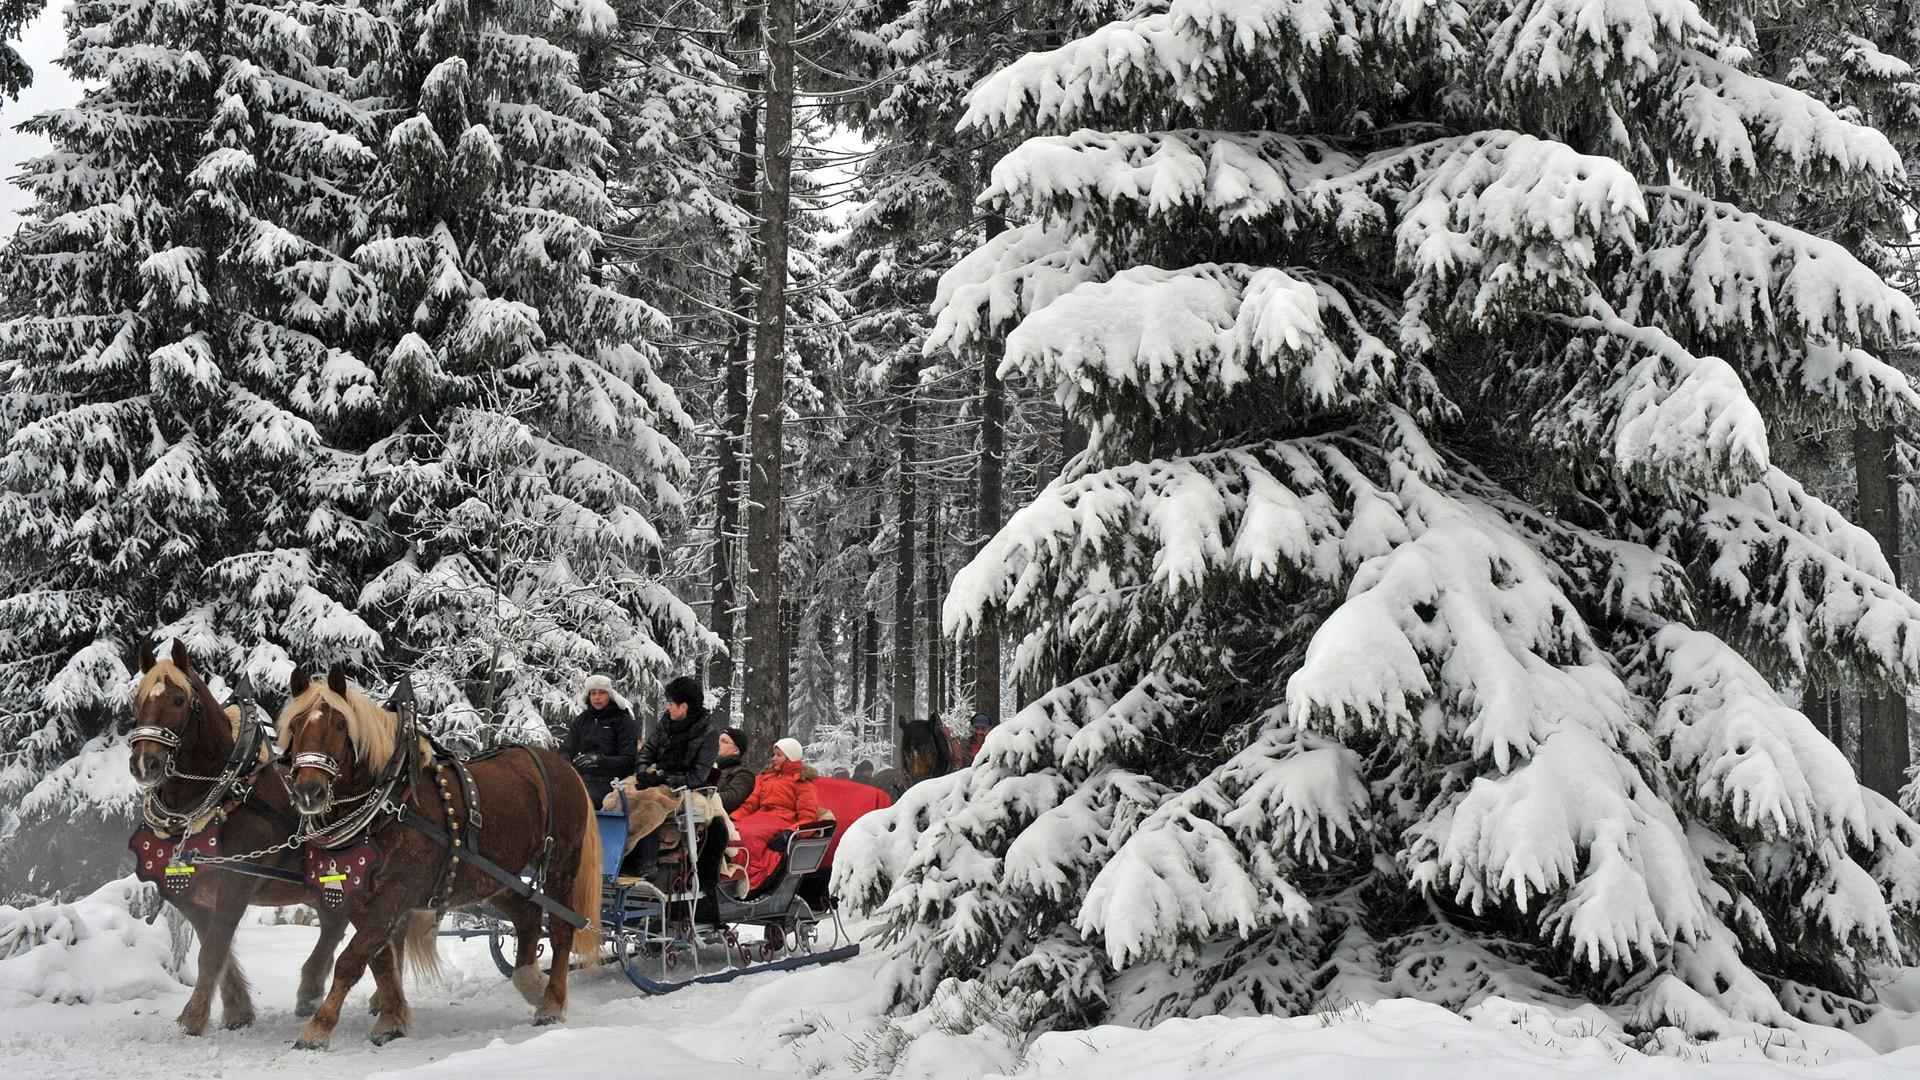 Cute Christmas Owl Desktop Wallpaper Horse Drawn Carriages In German Winter Forest Wallpaper